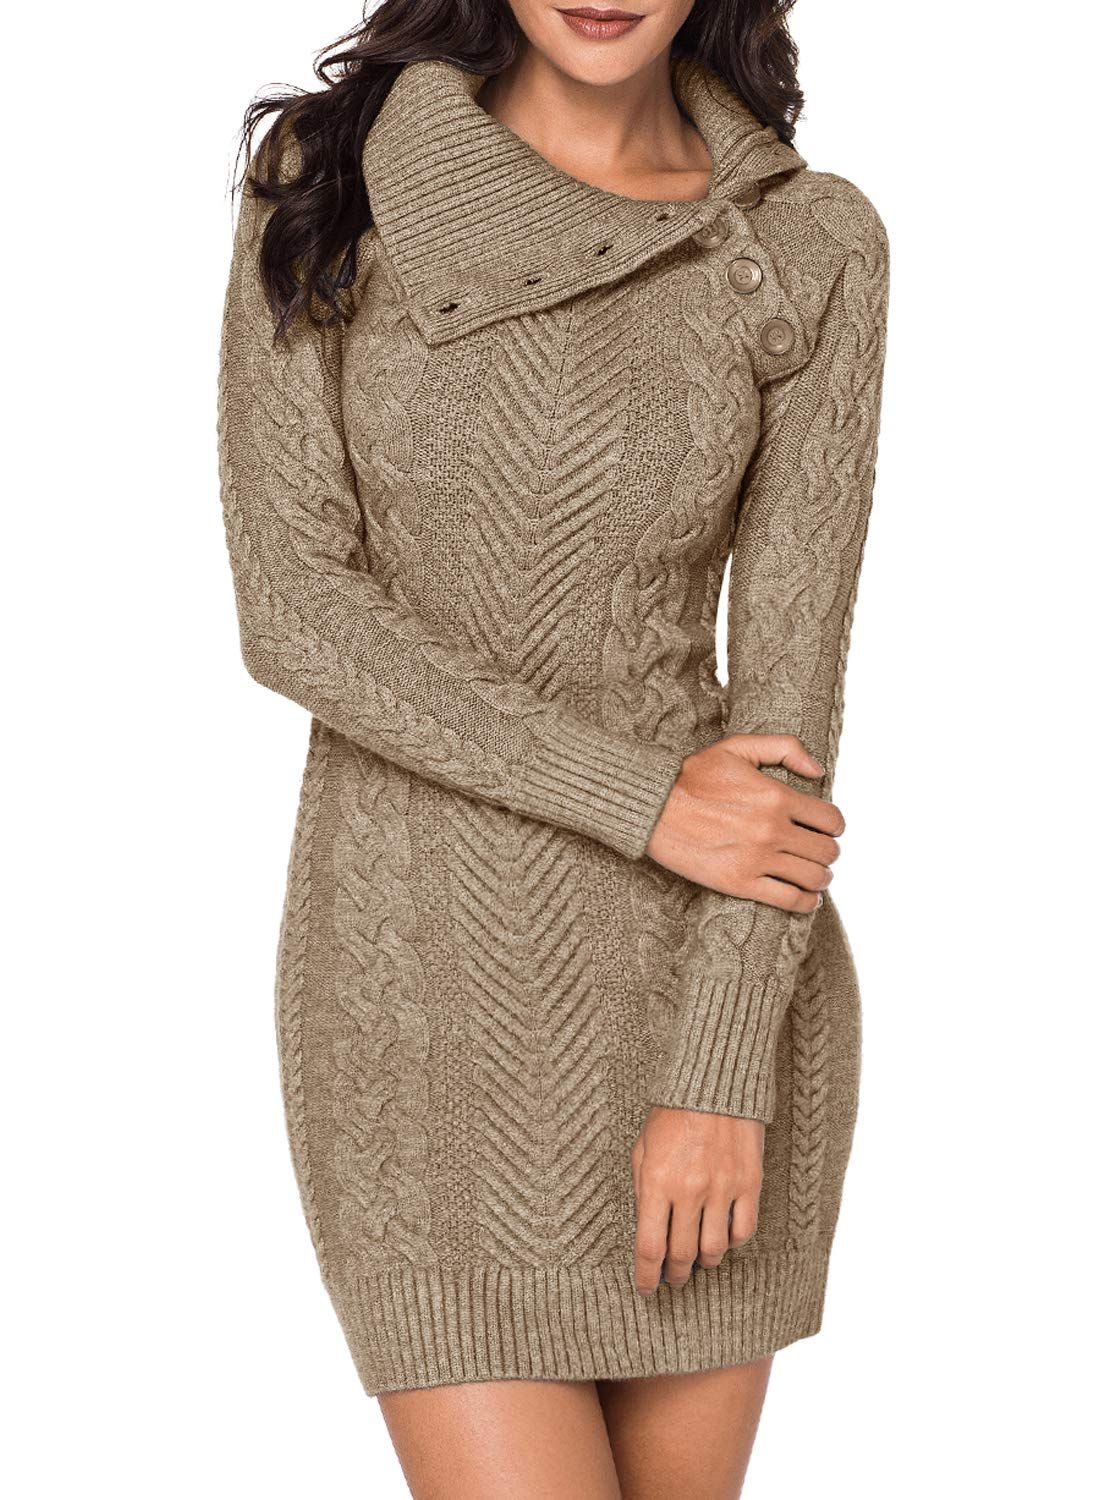 Blencot Turtleneck Chunky Cable Knit Pullover with Pockets